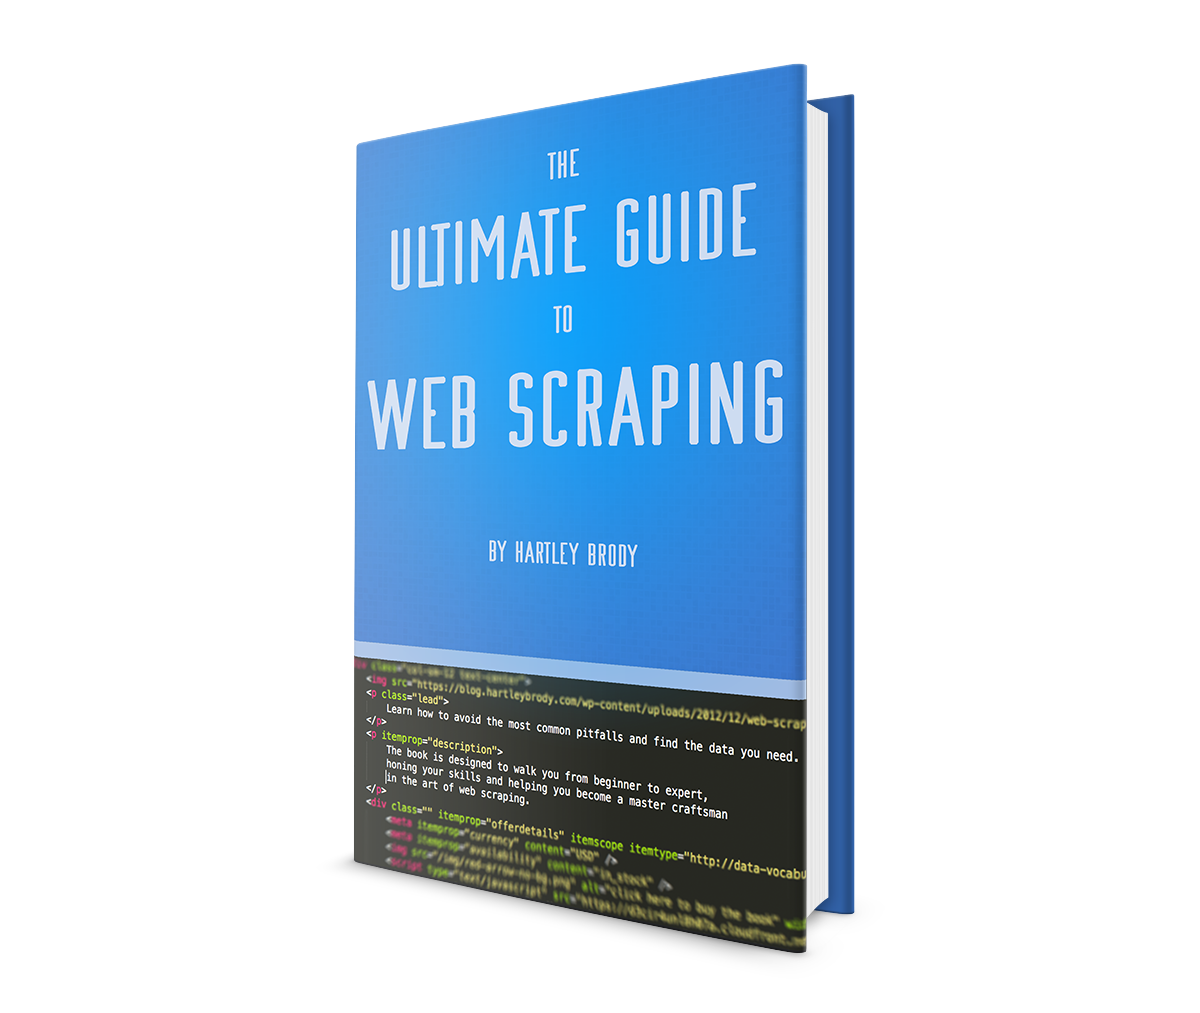 Web Scraping Reference: A Simple Cheat Sheet for Web Scraping with